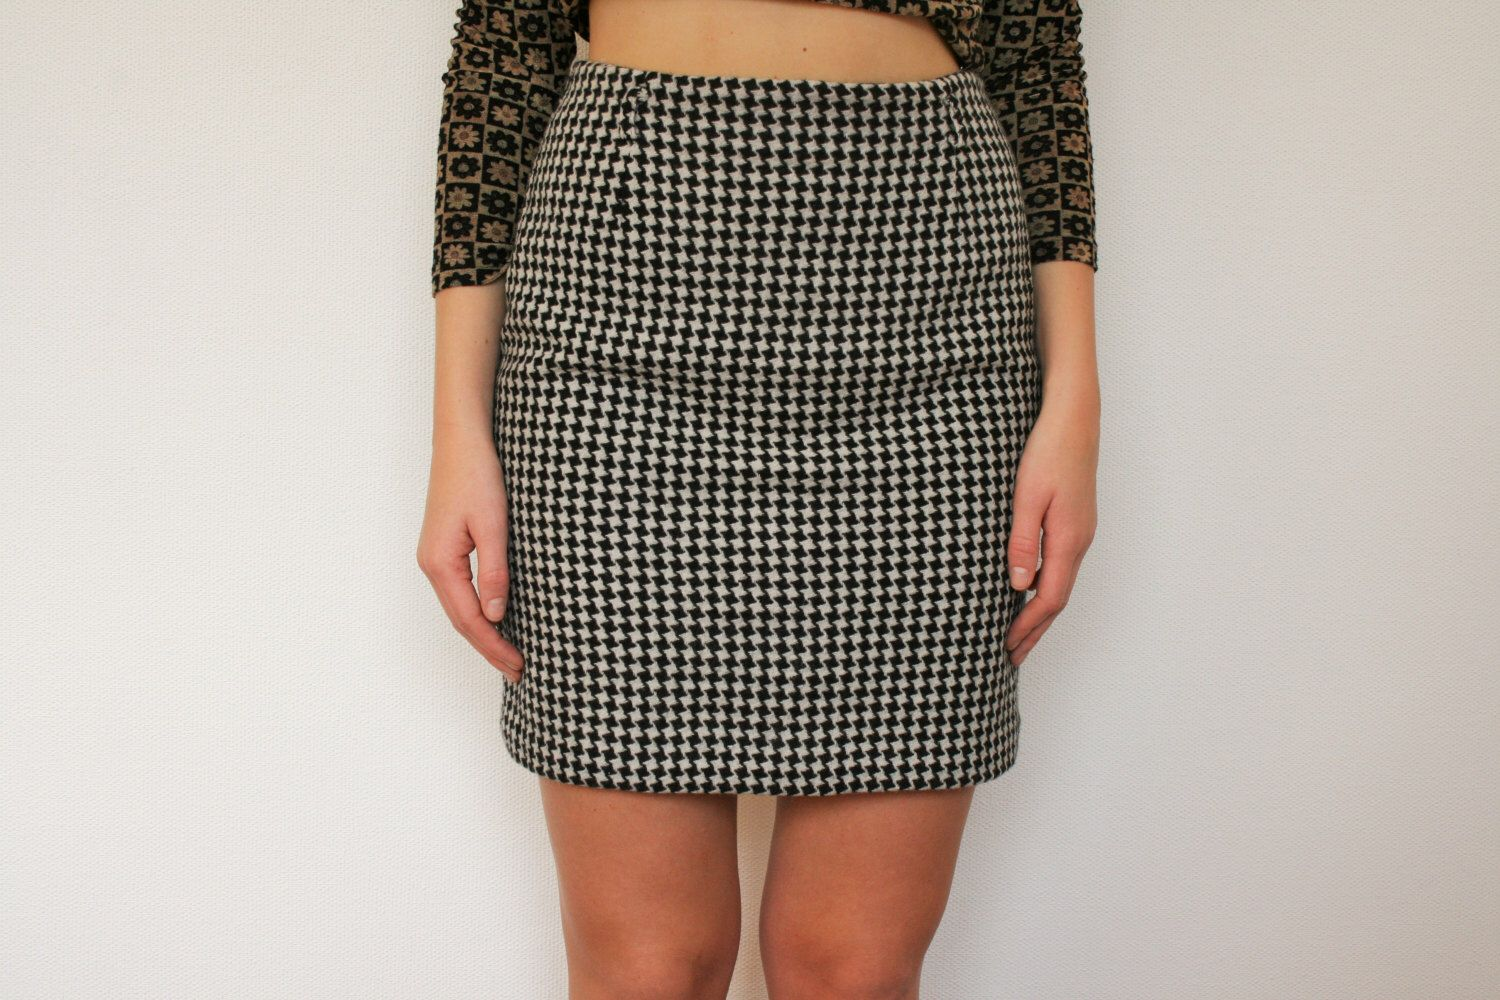 Black White Tartan Pencil skirt Plaid Skirt houndstooth Woolen ...